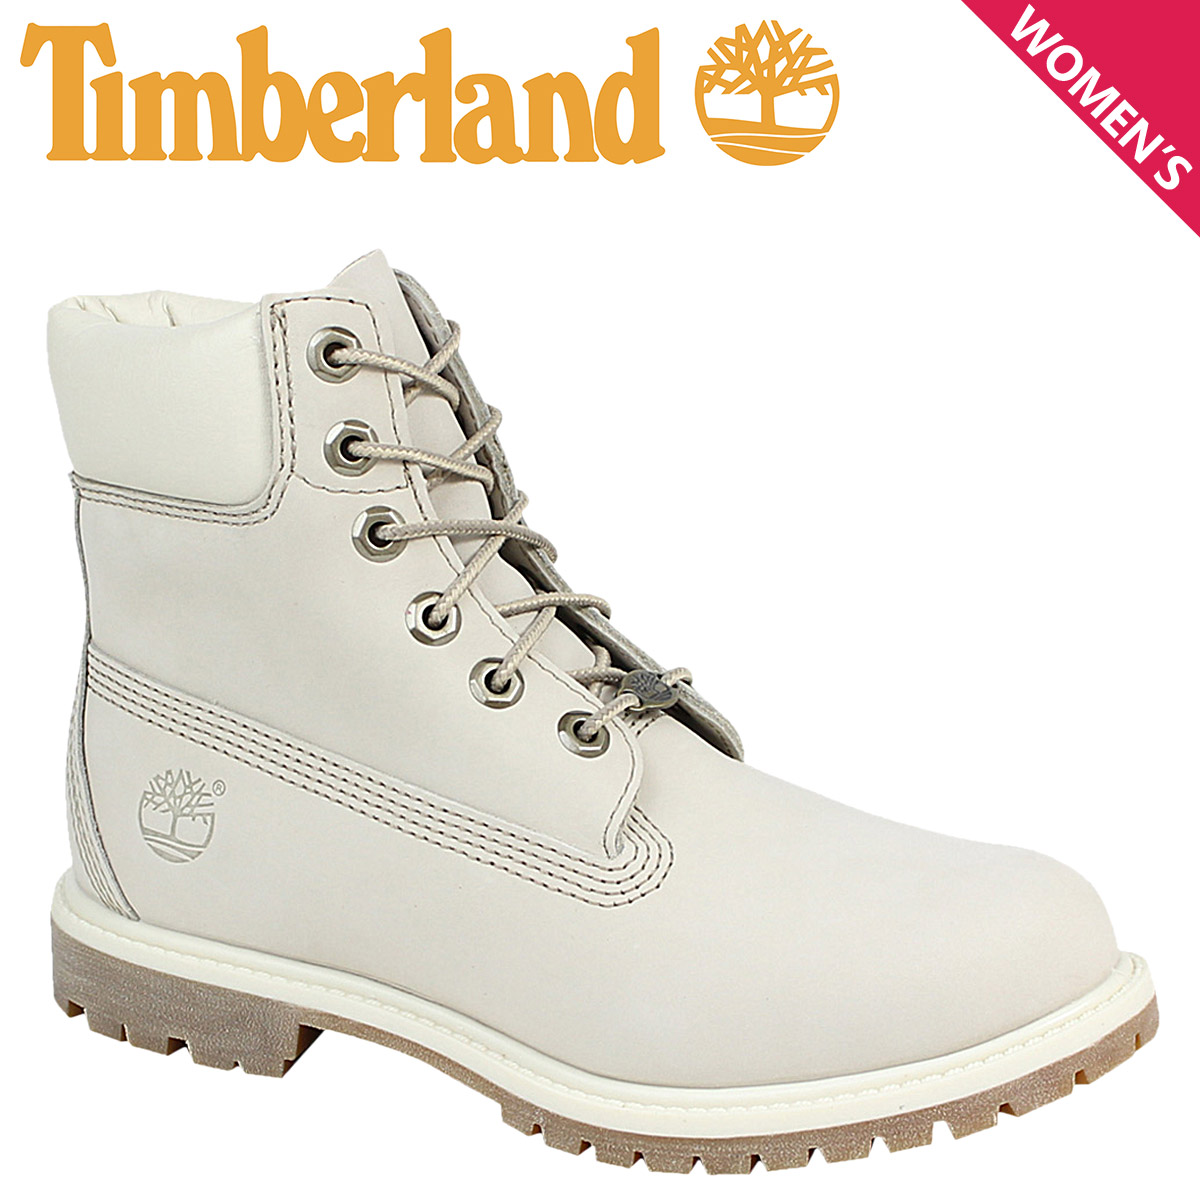 ALLSPORTS  Women s Timberland Timberland 6 INCHI 6 inch premium boots  WOMENS 6-INCH PREMIUM WATERPROOF BOOTS 23623 n W wise water white  5e8150755a